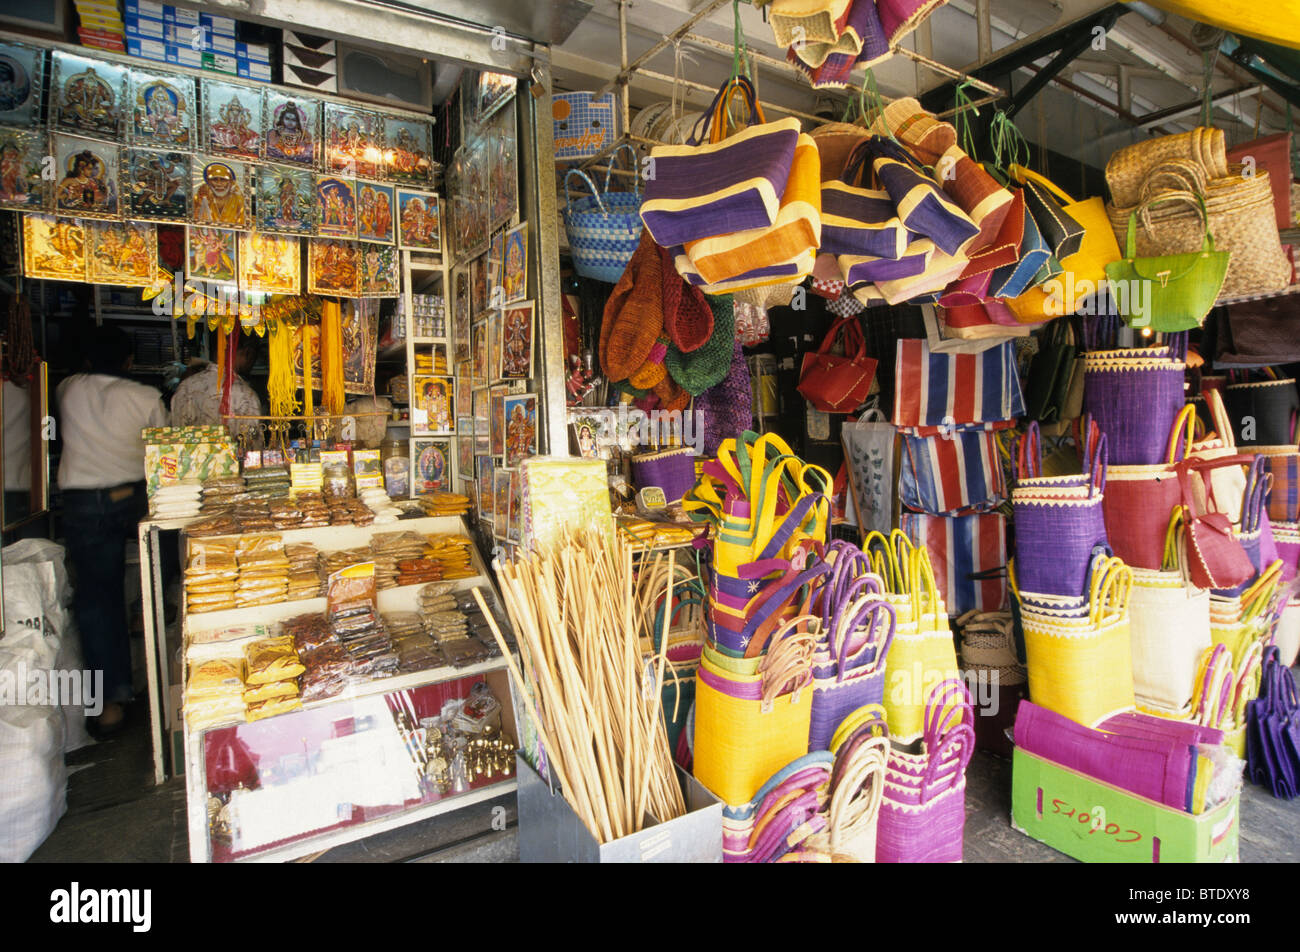 Shops in central market port louis mauritius island indian ocean stock photo royalty free - Mauritius market port louis ...